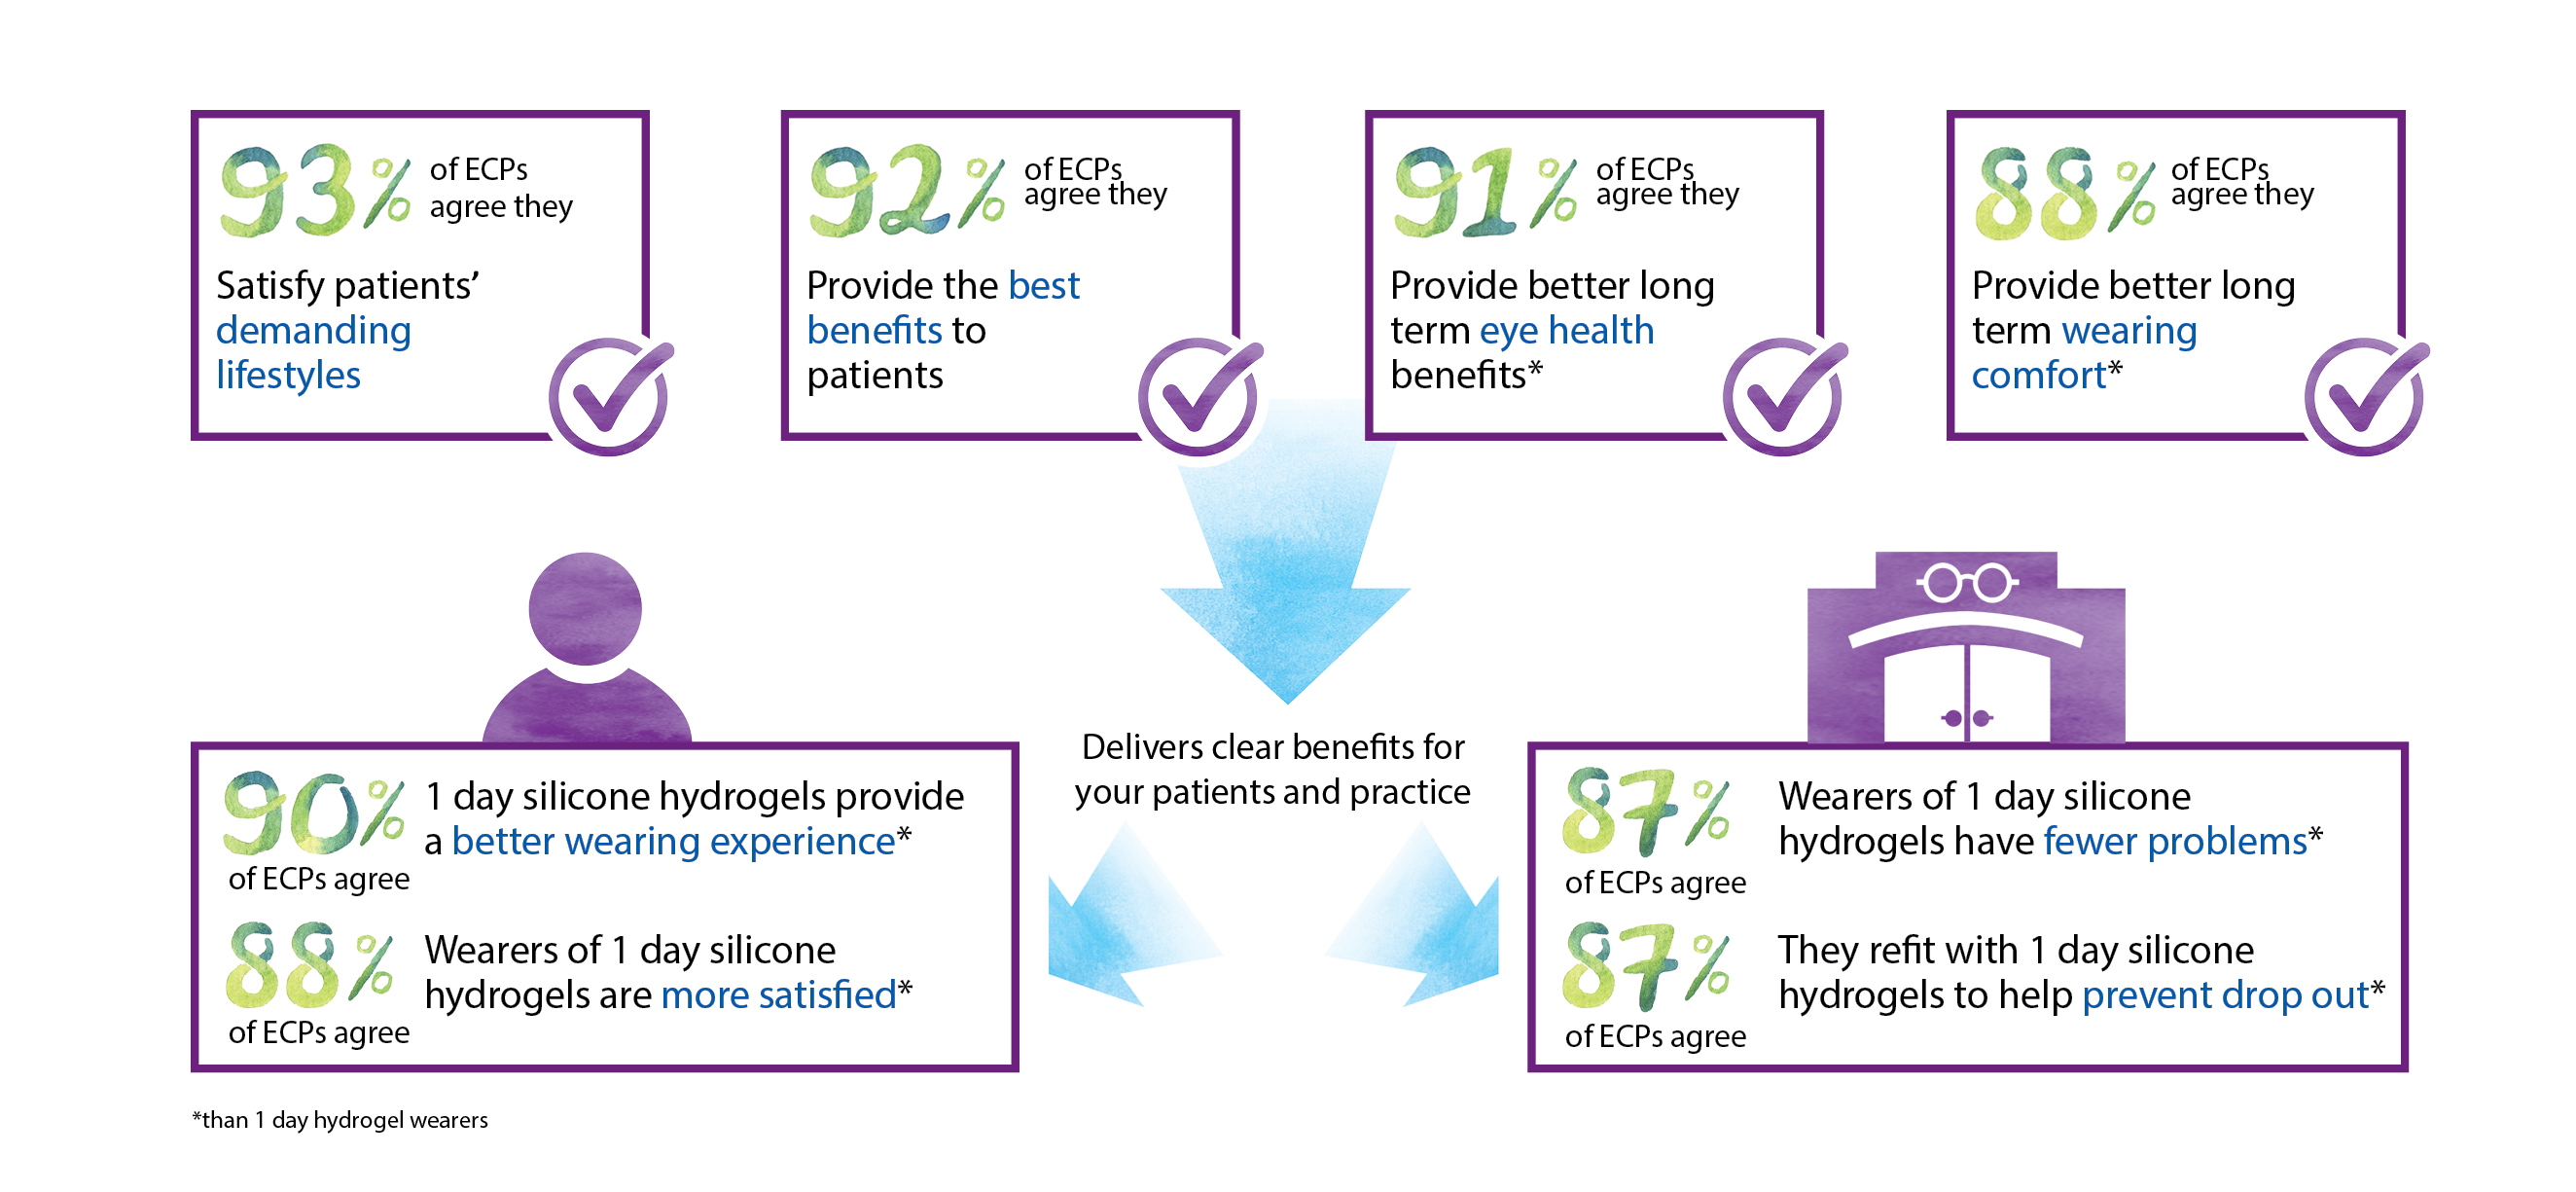 9 in 10 ECPs agree that when 1 day silicone hydrogels are in use, they deliver the following benefits